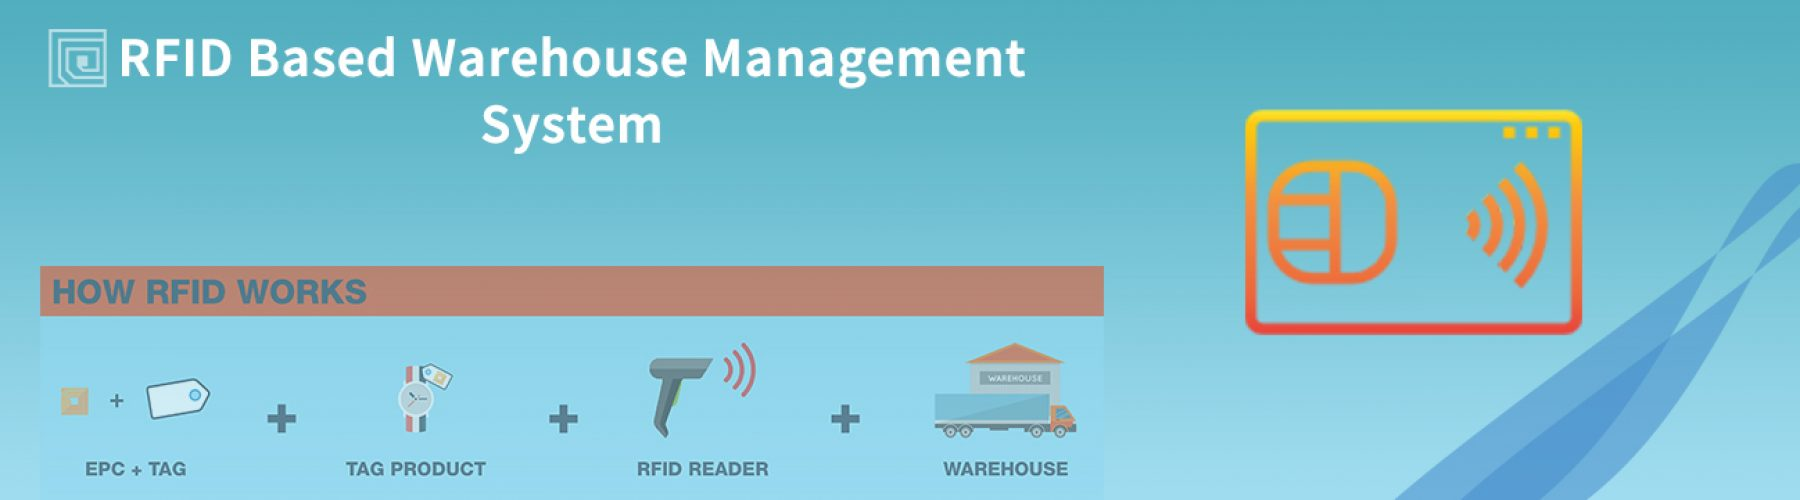 RFID Implementation in Warehouse